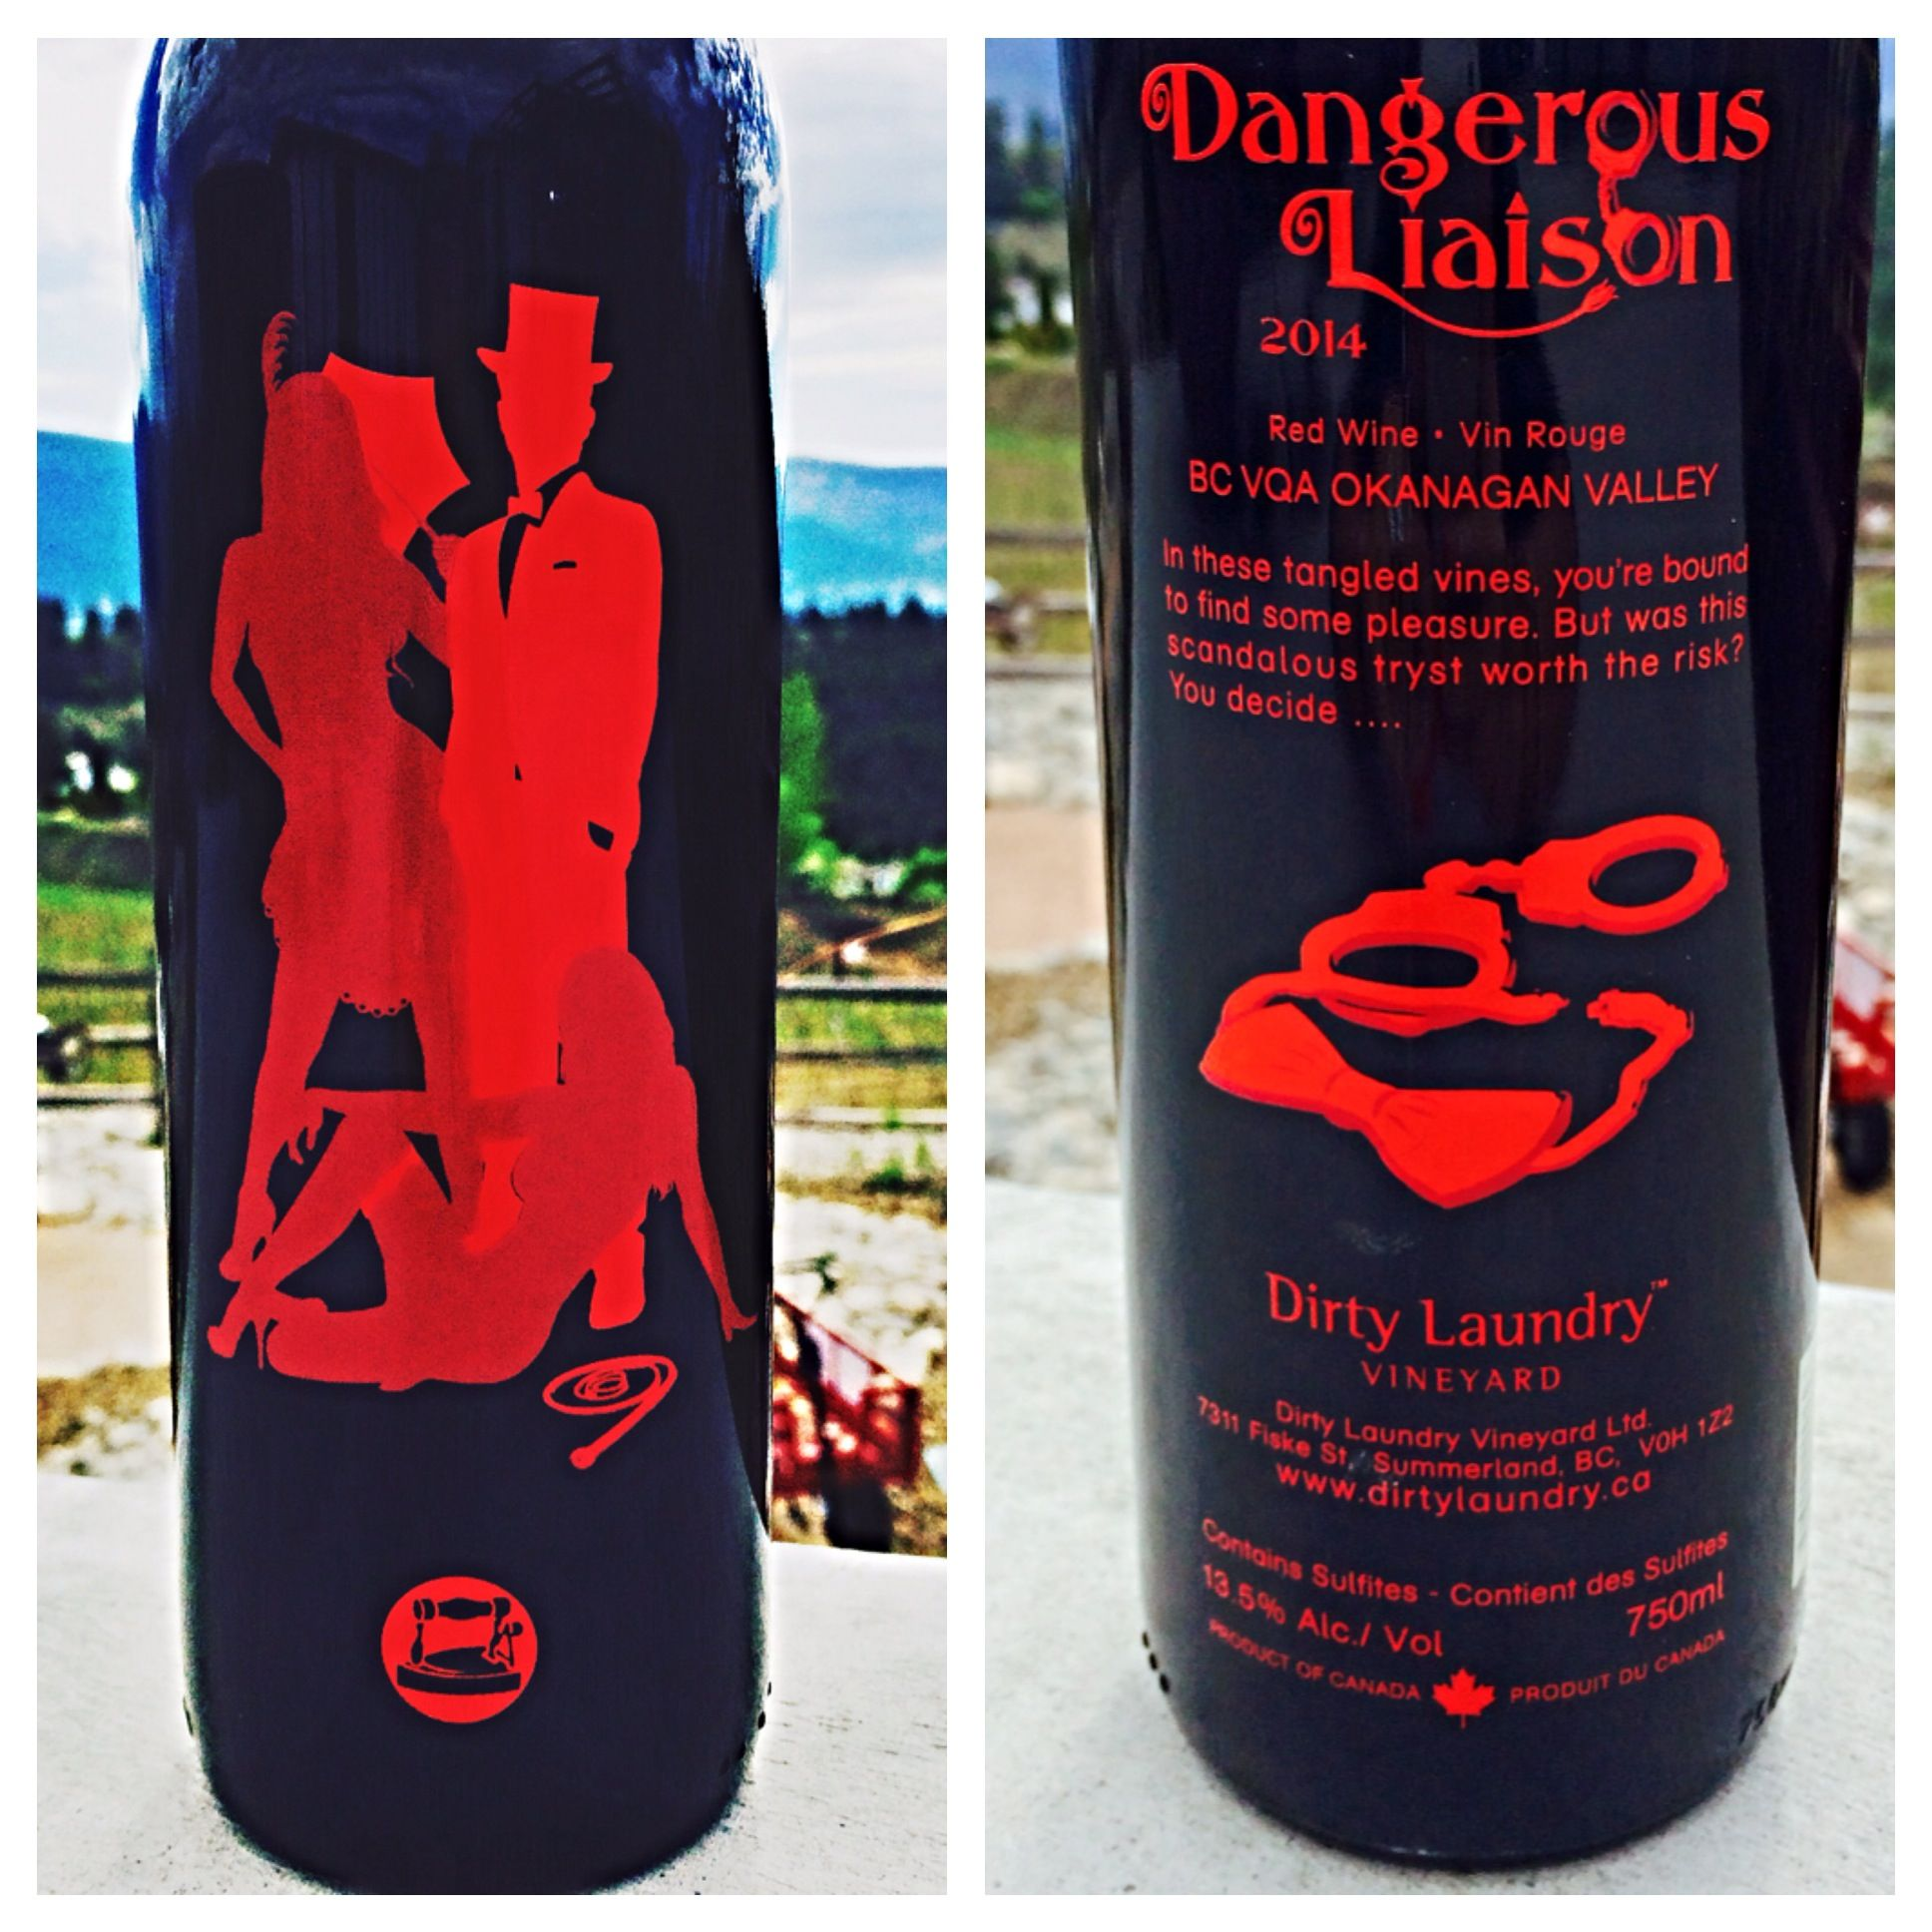 Dangerous Liaison 2014 Http Bit Ly 1f49pux Dangerous Liaisons Okanagan Valley Red Wine